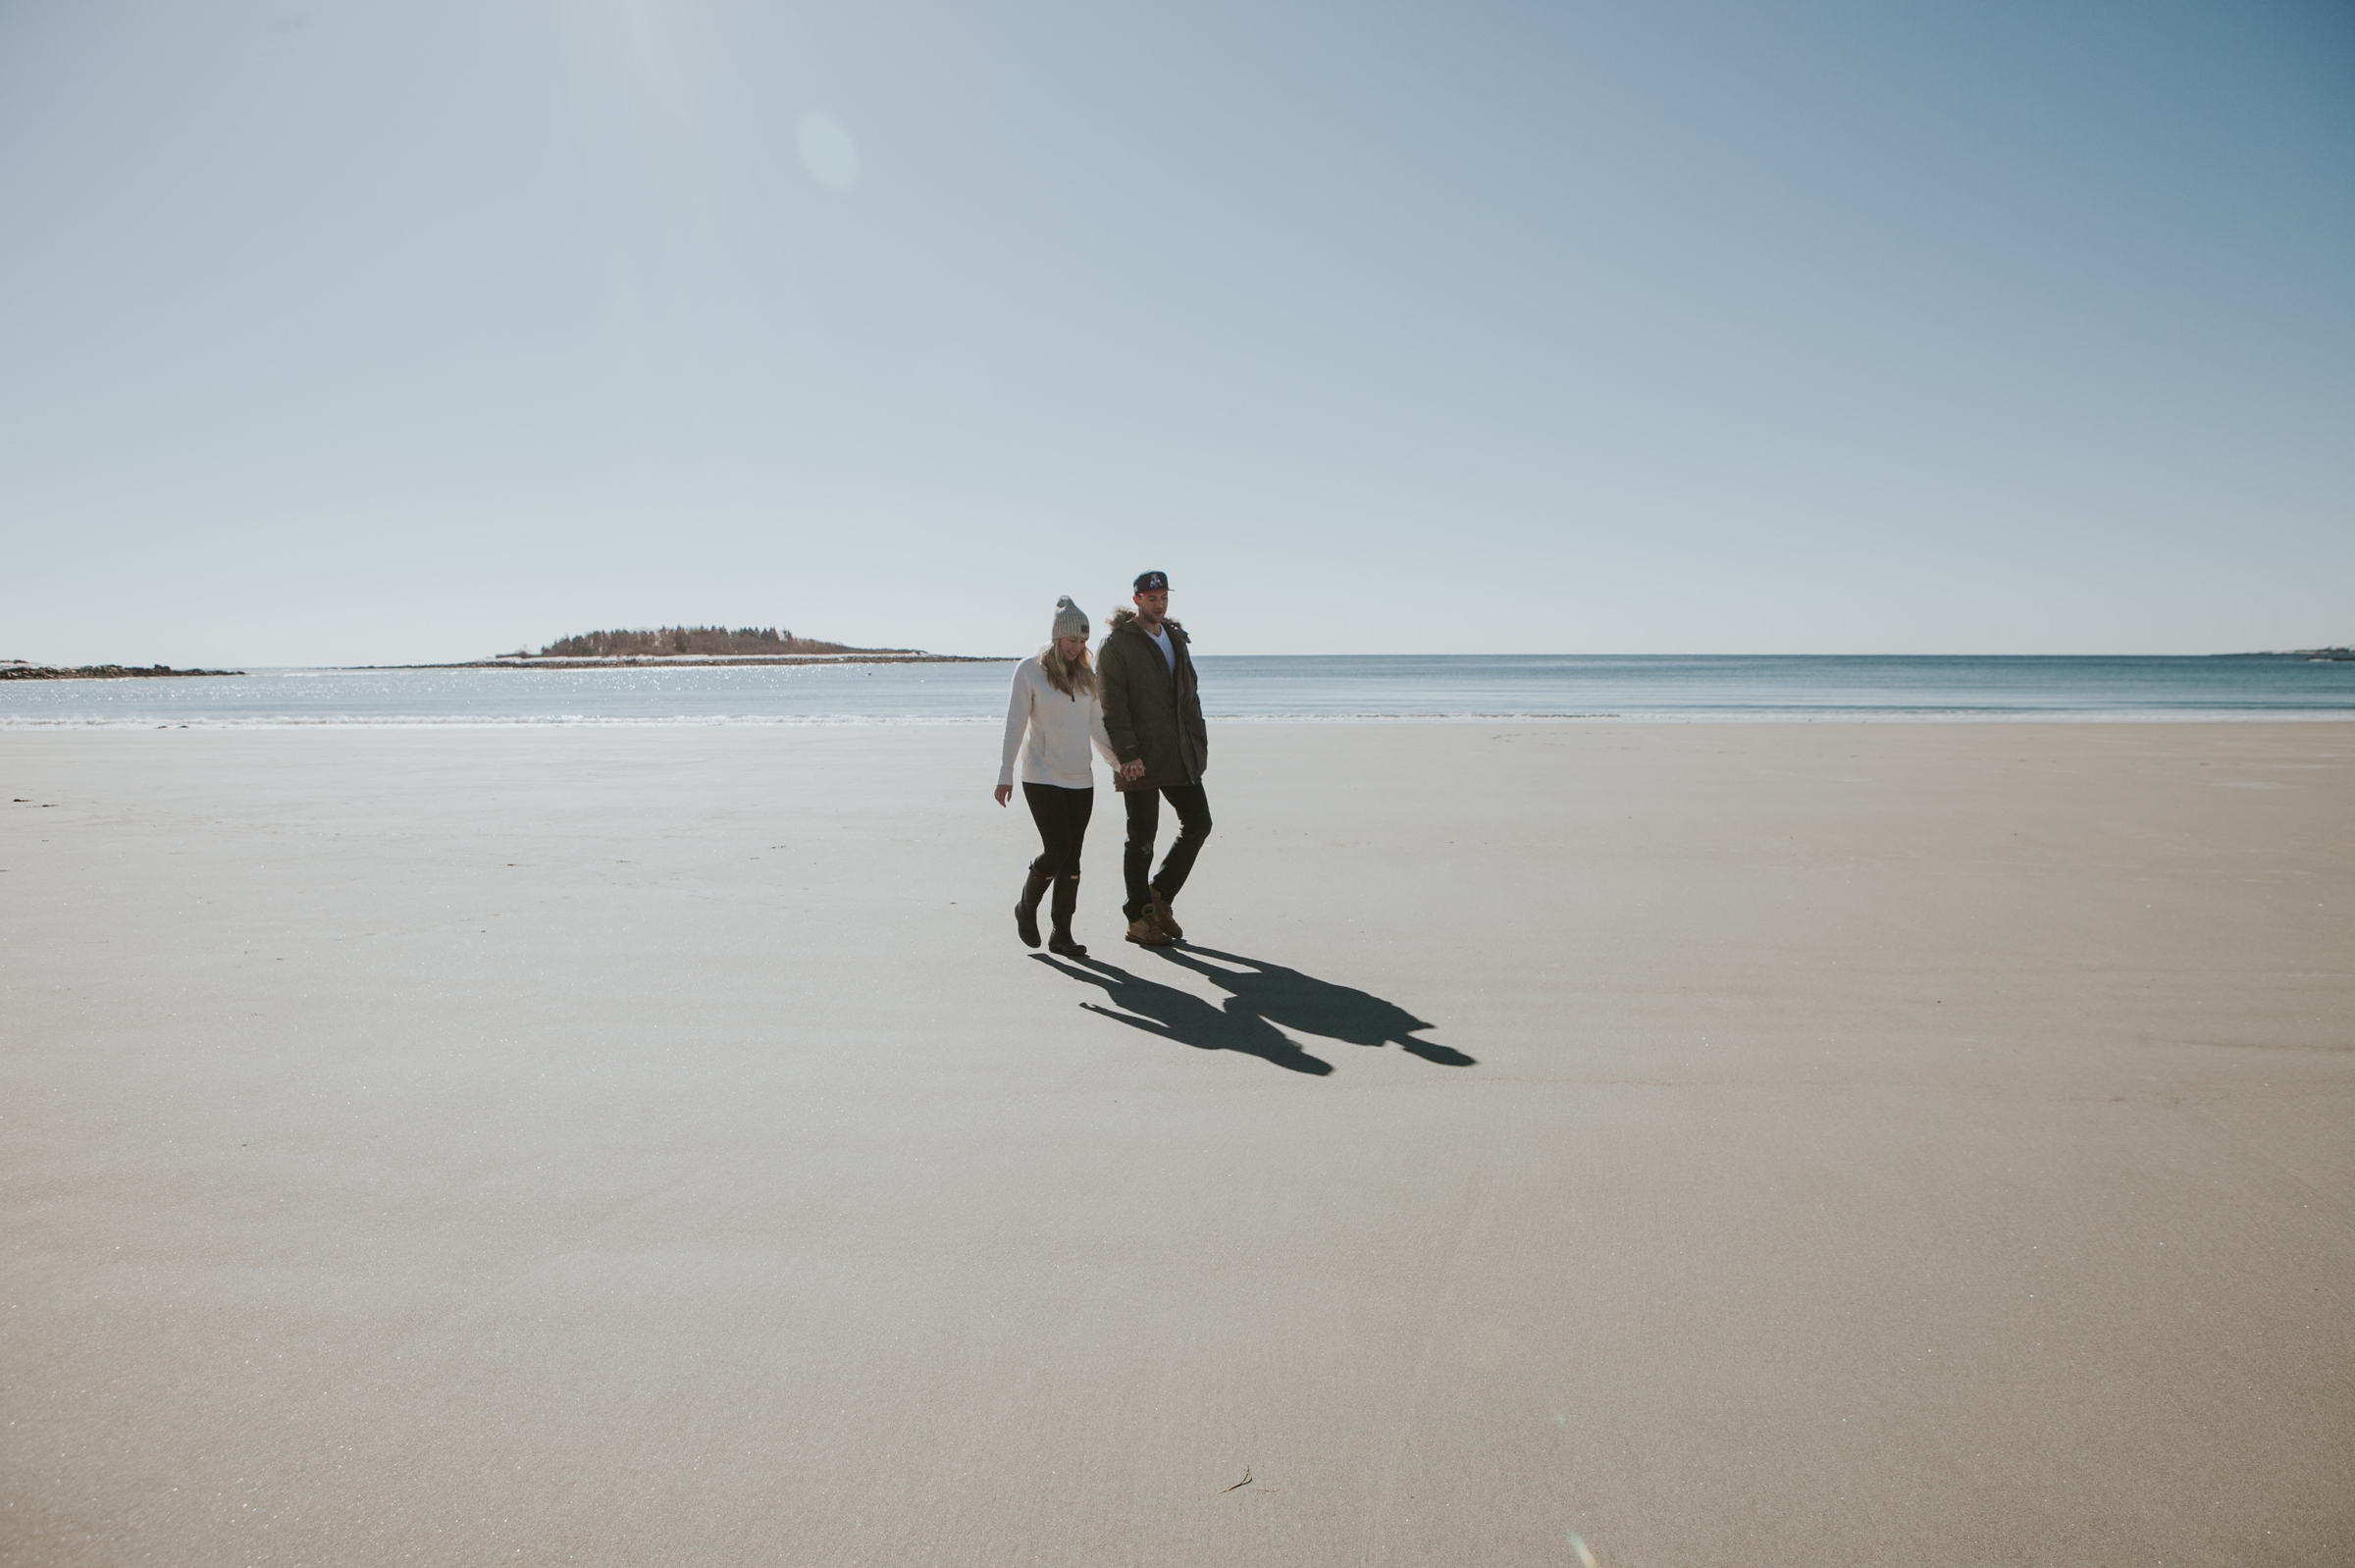 Goose Rocks Beach Kennebunkport Maine Engagement Proposal 6 © Heidi Kirn Photography.jpg